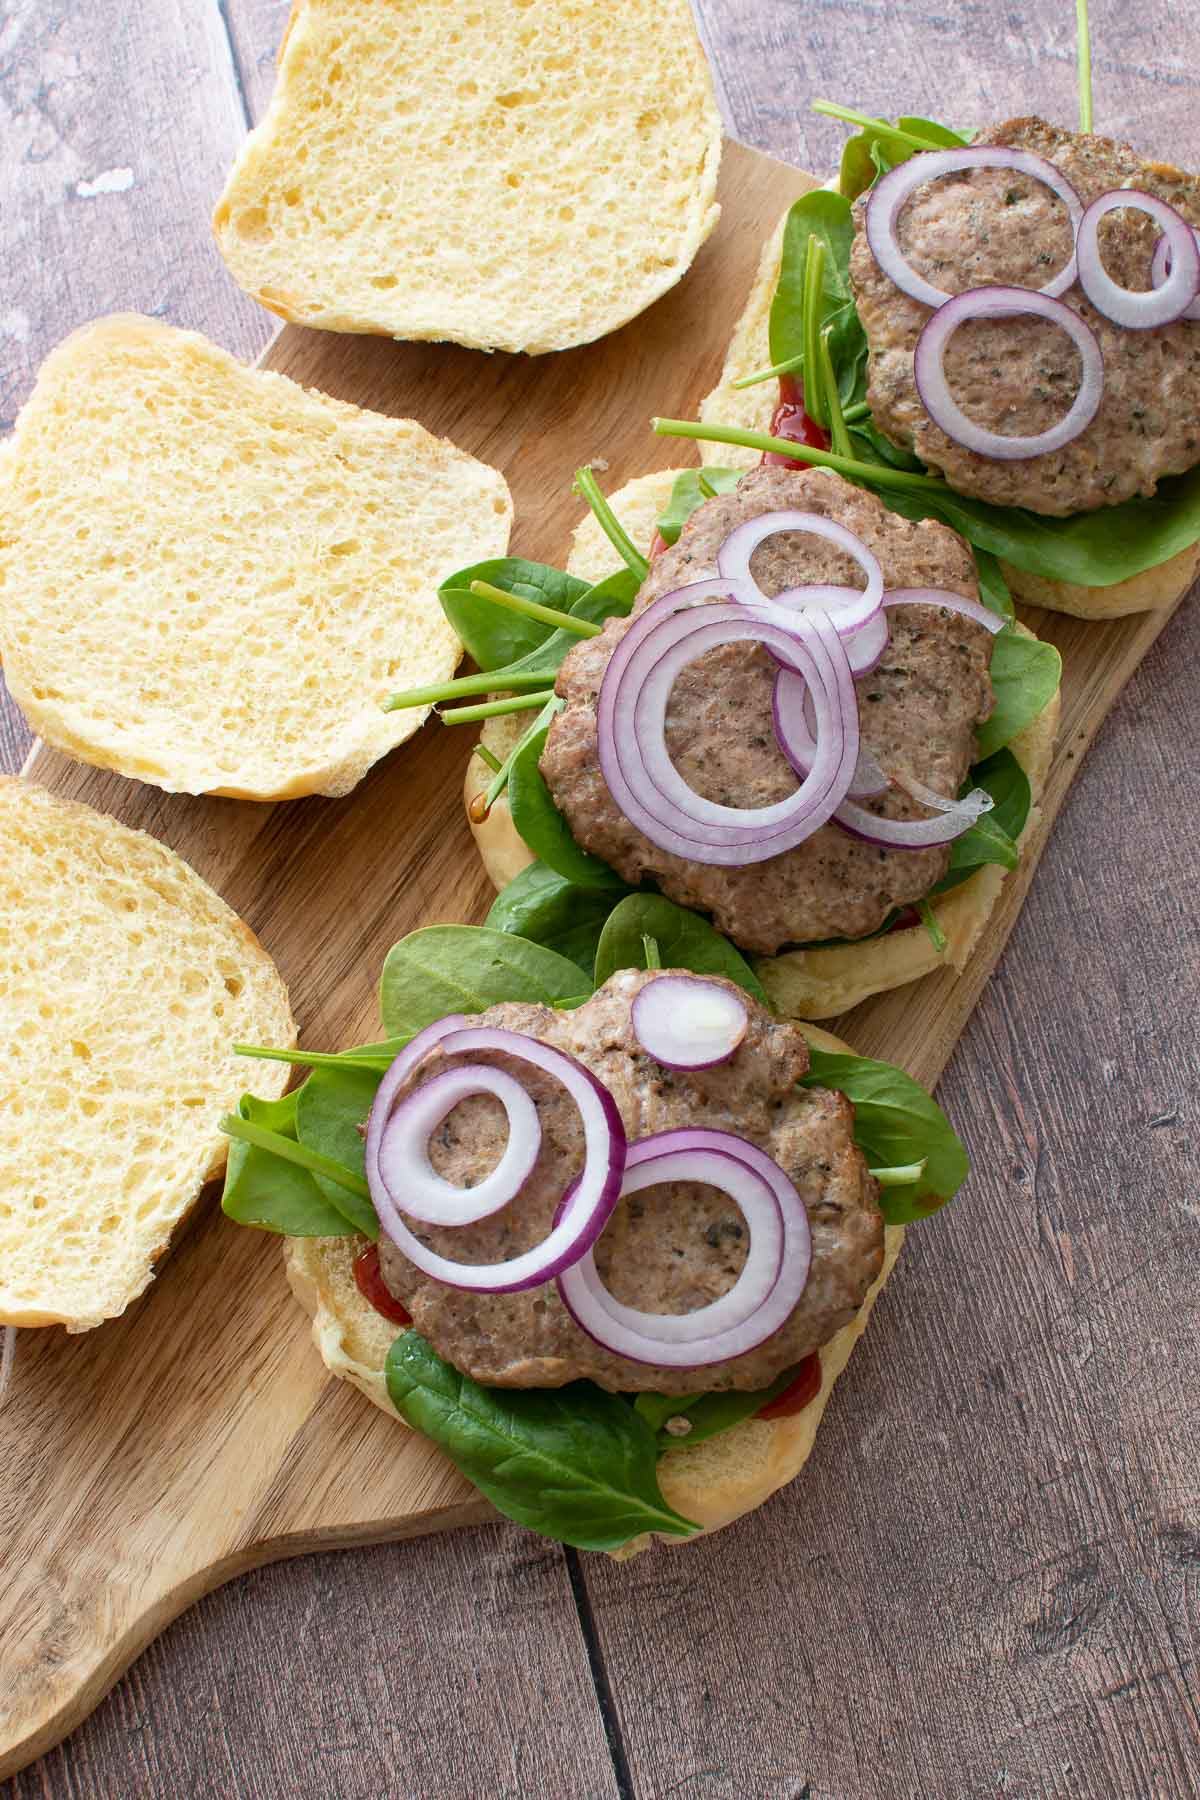 Baked ground turkey burgers with onion.